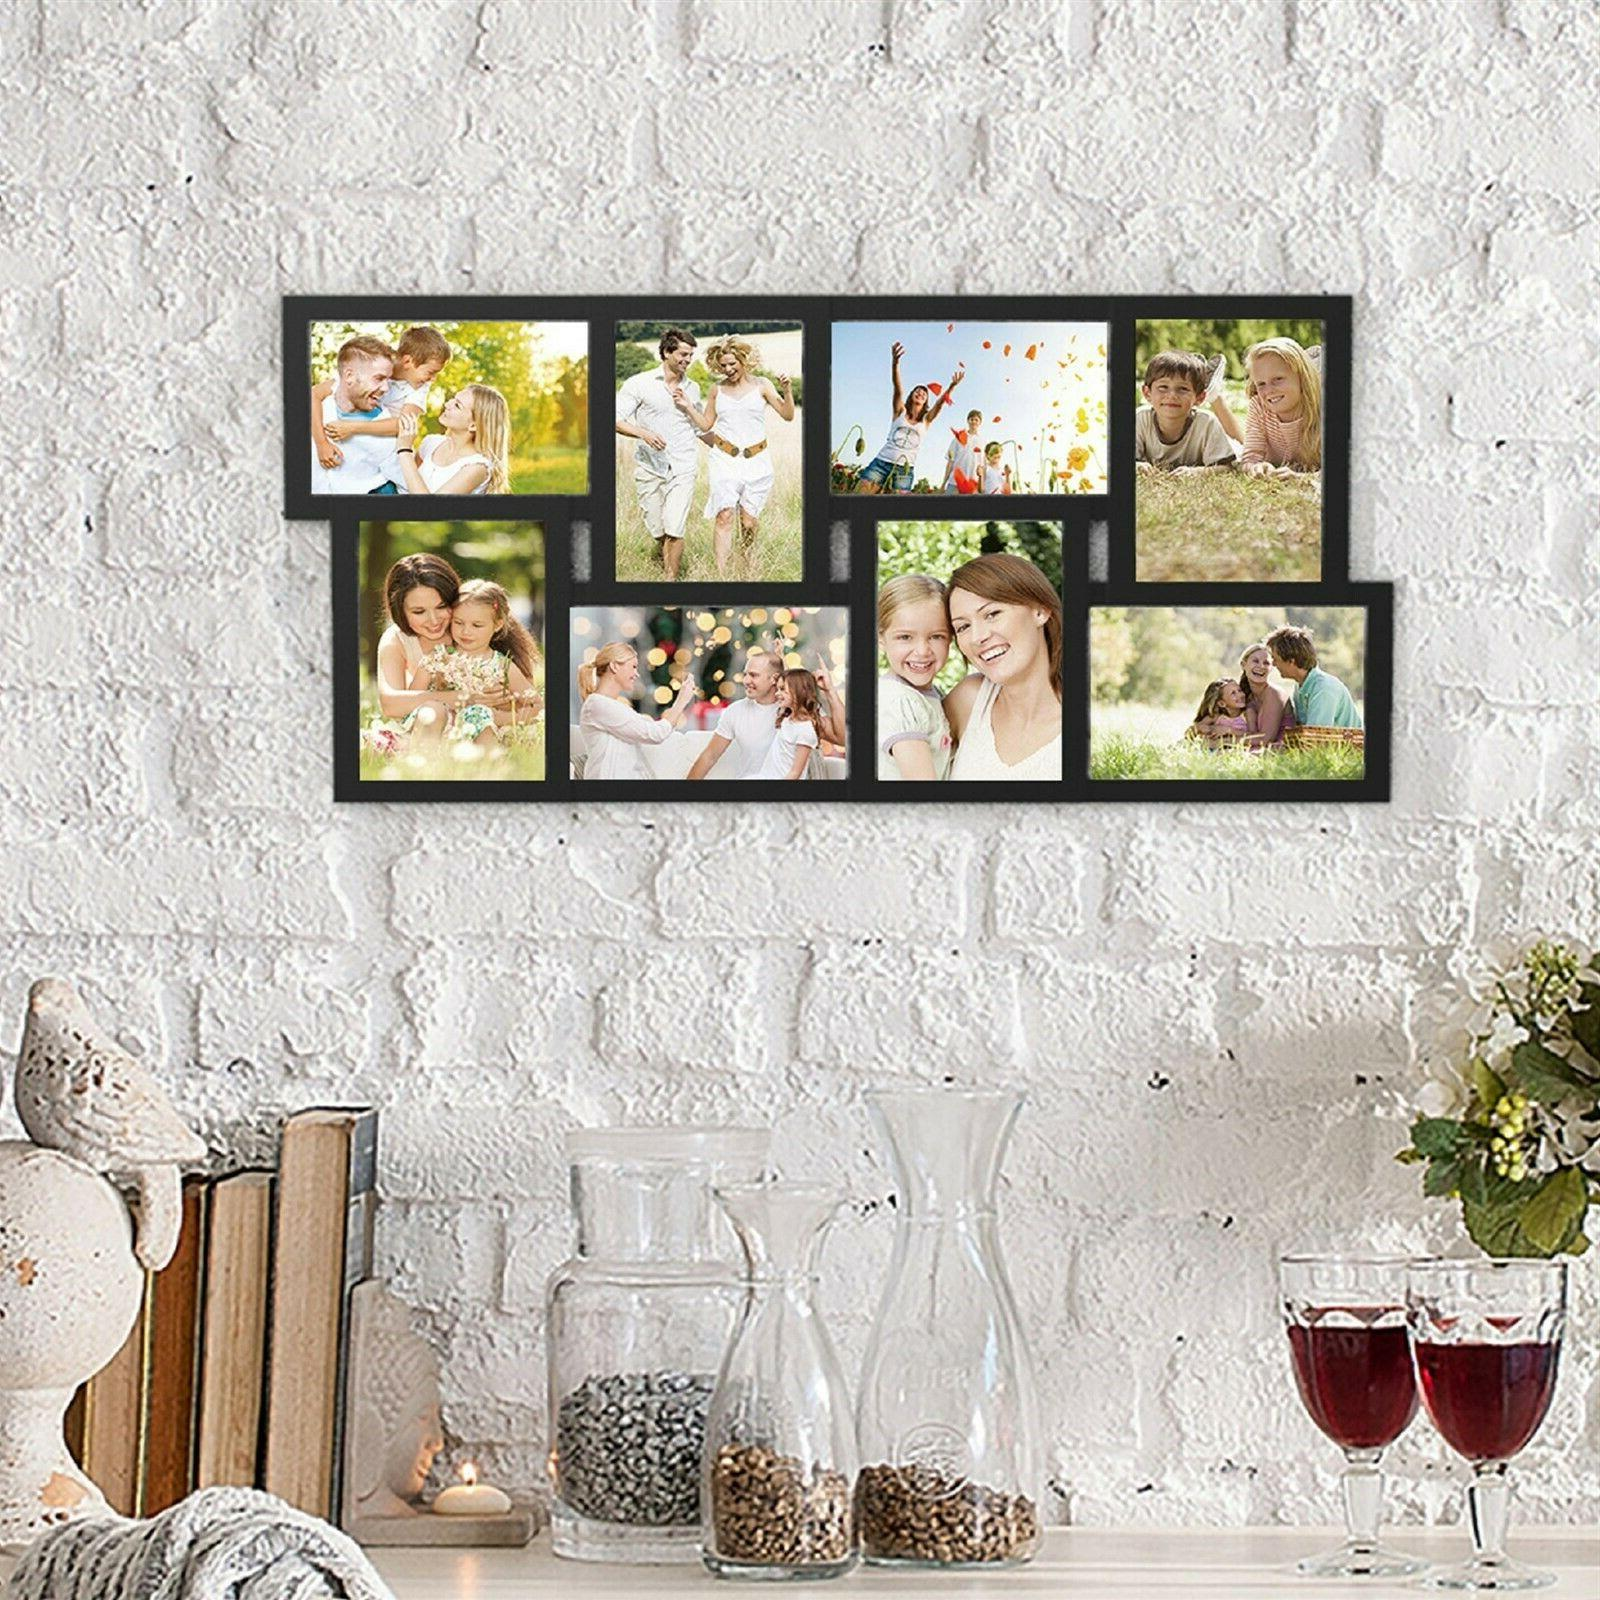 Collage Picture Frame Holds 8 Images 4 X 6 Vertical or Horiz